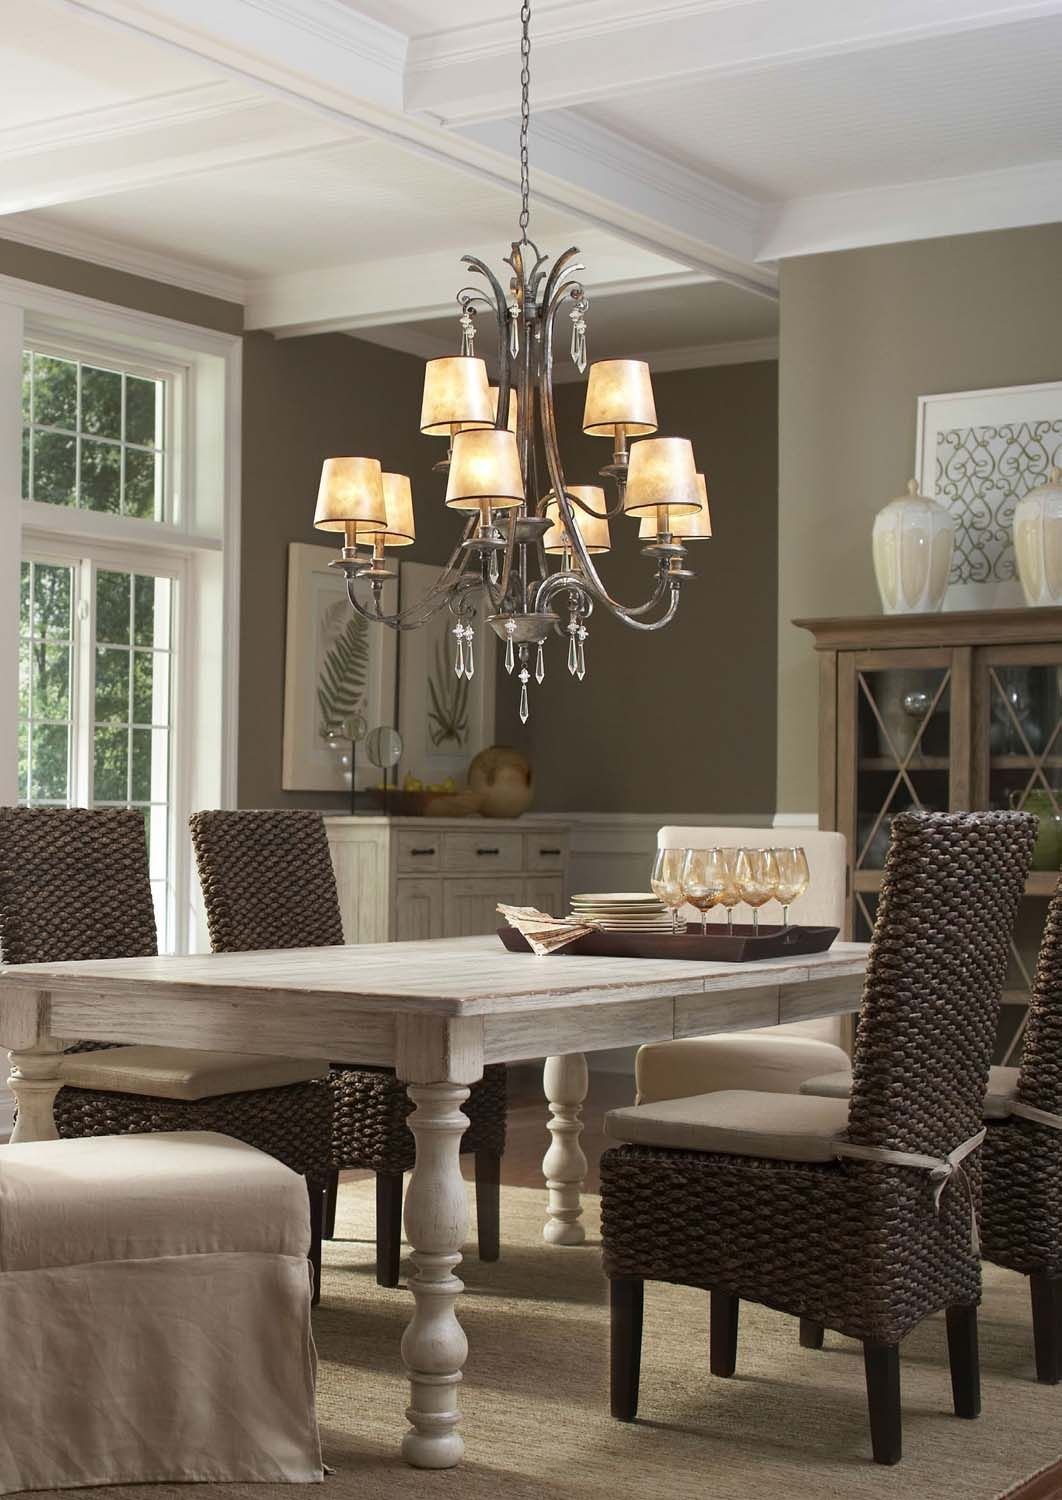 french provincial lighting. Lights · Silver Chandelier - French Provincial Style Lighting H